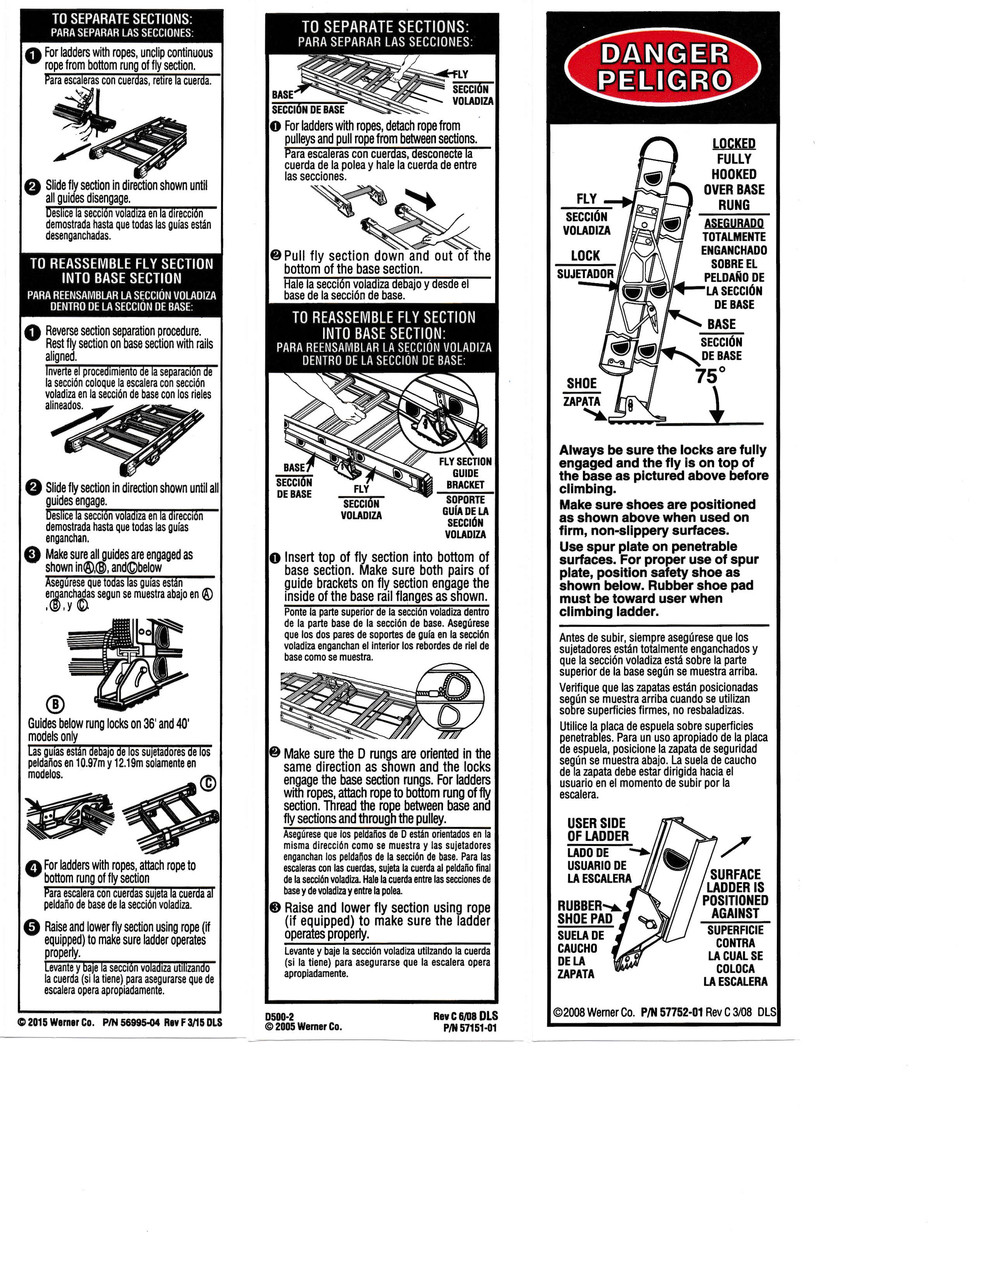 Werner Lae100 Safety Labels Aluminum Extension Ladders